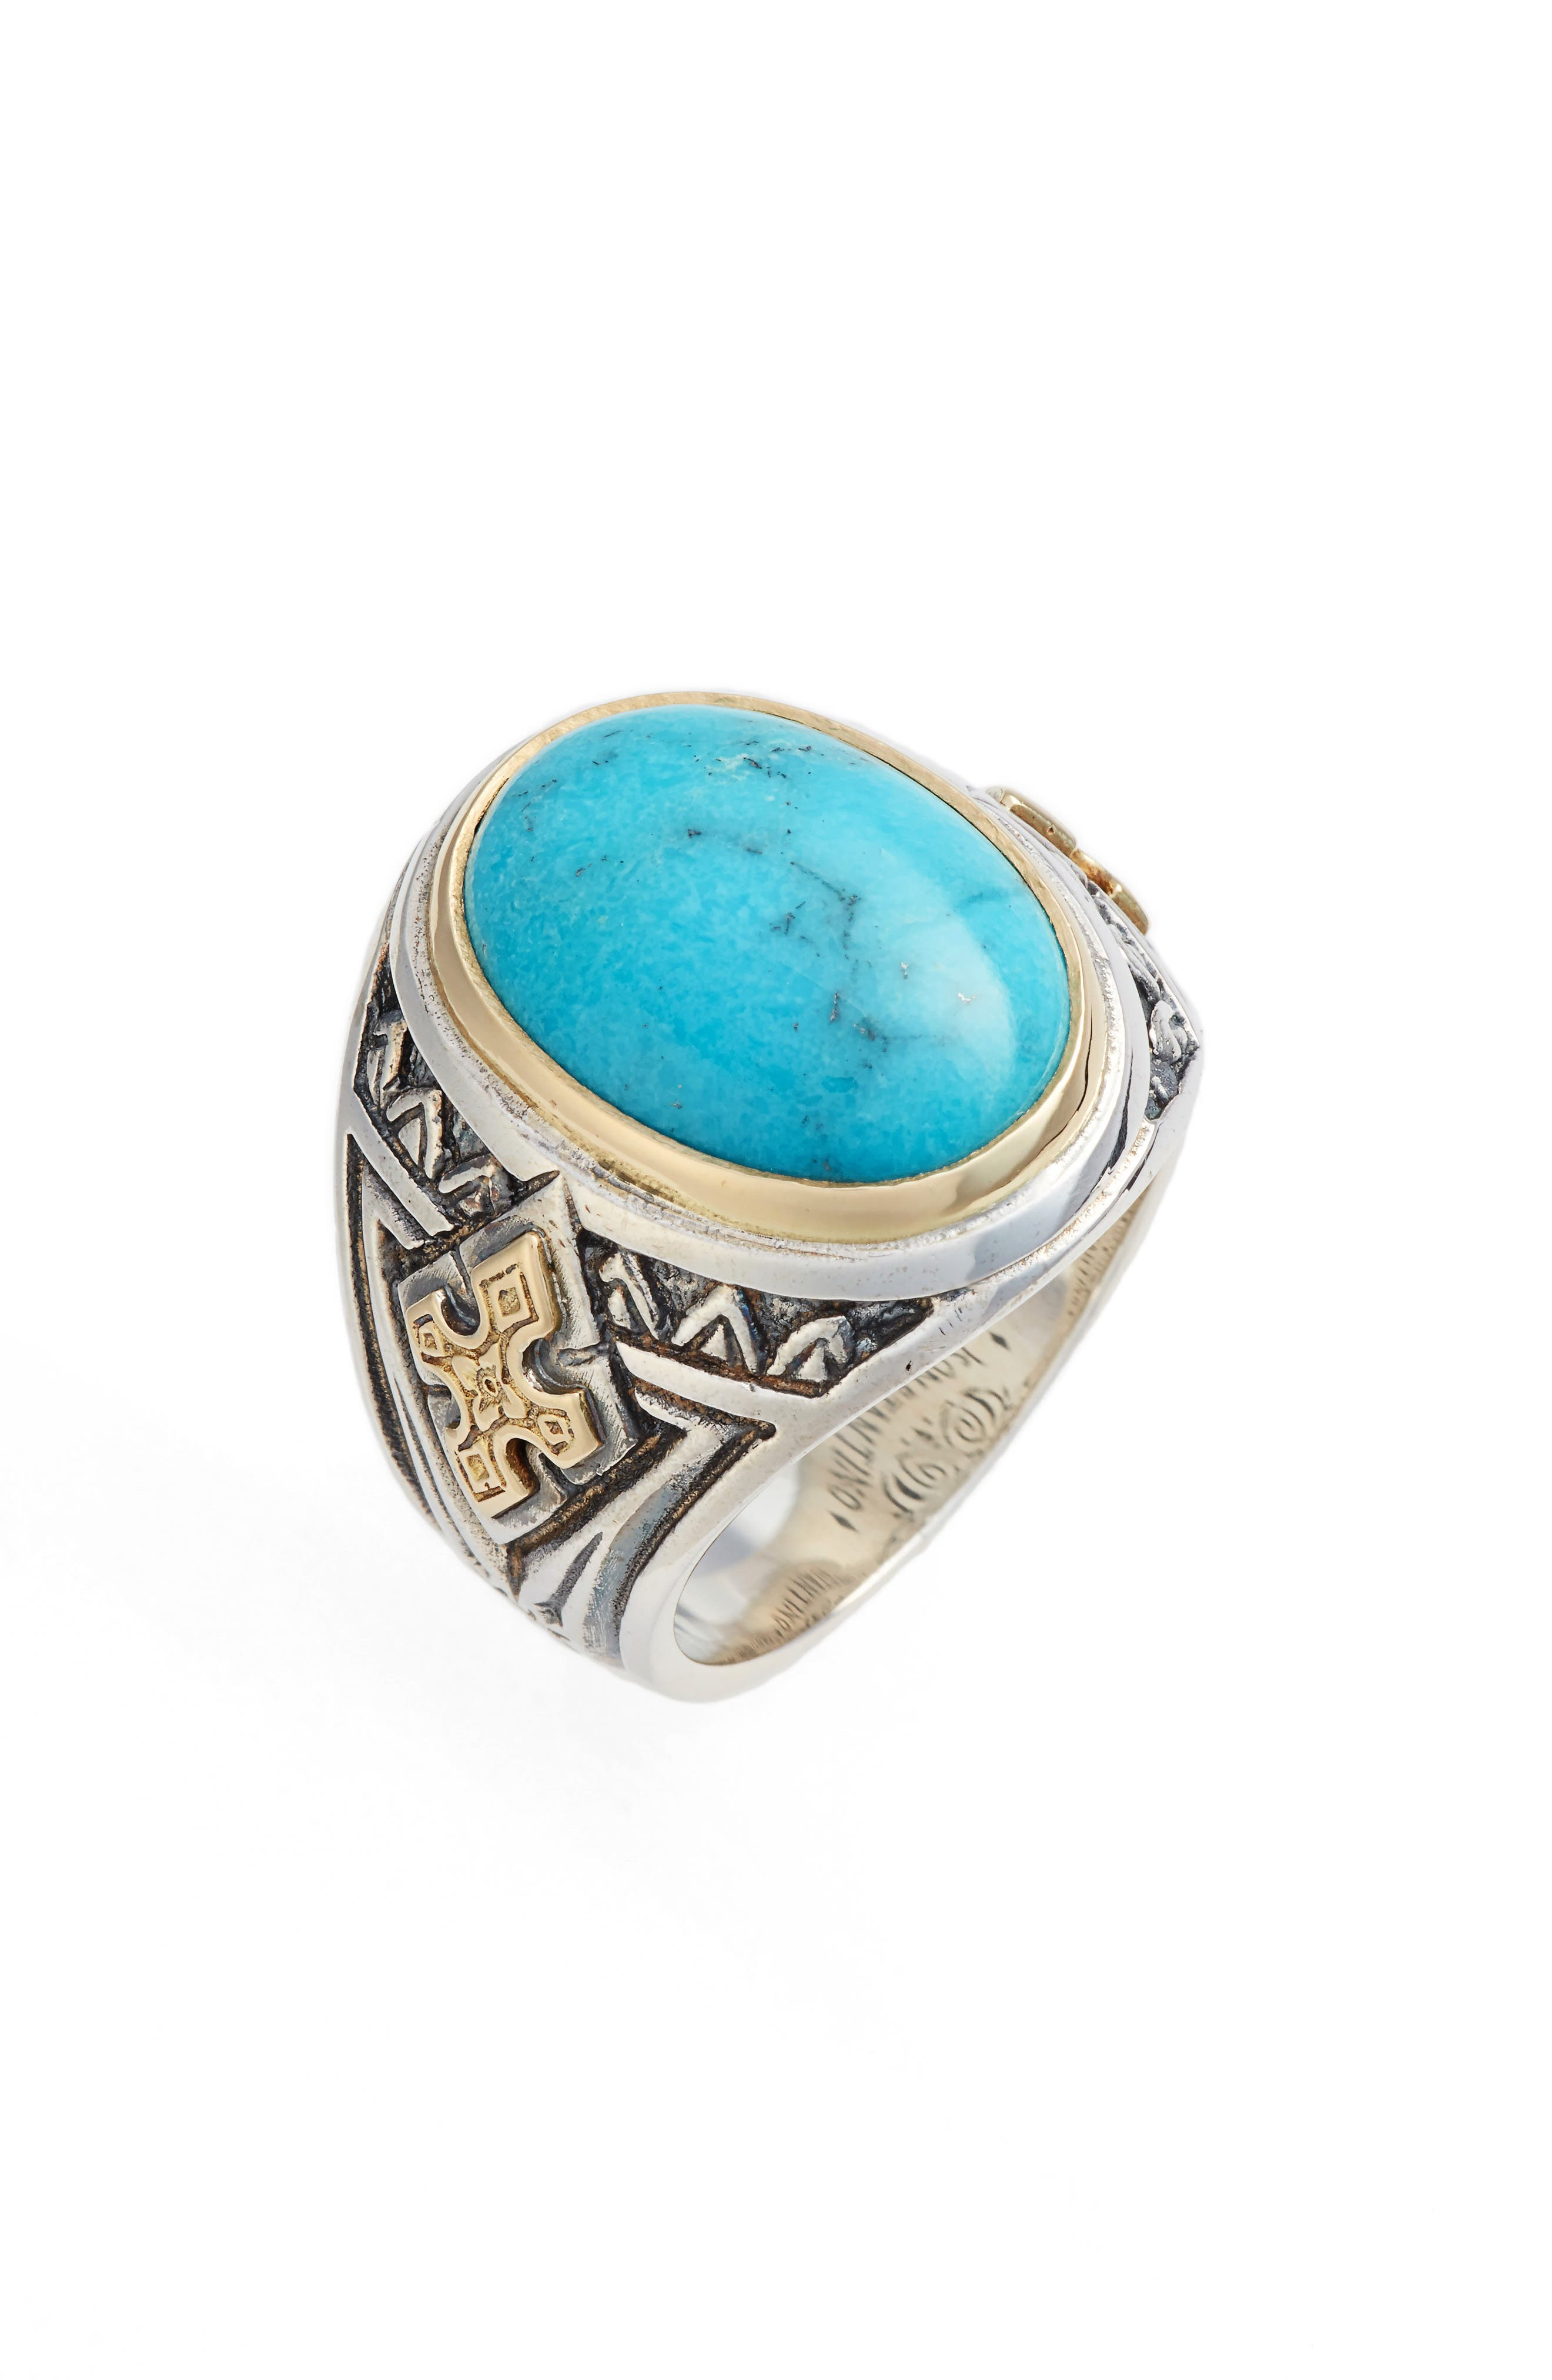 Heonos Turquoise Ring,                         Main,                         color, Silver/ Gold/ Turquoise